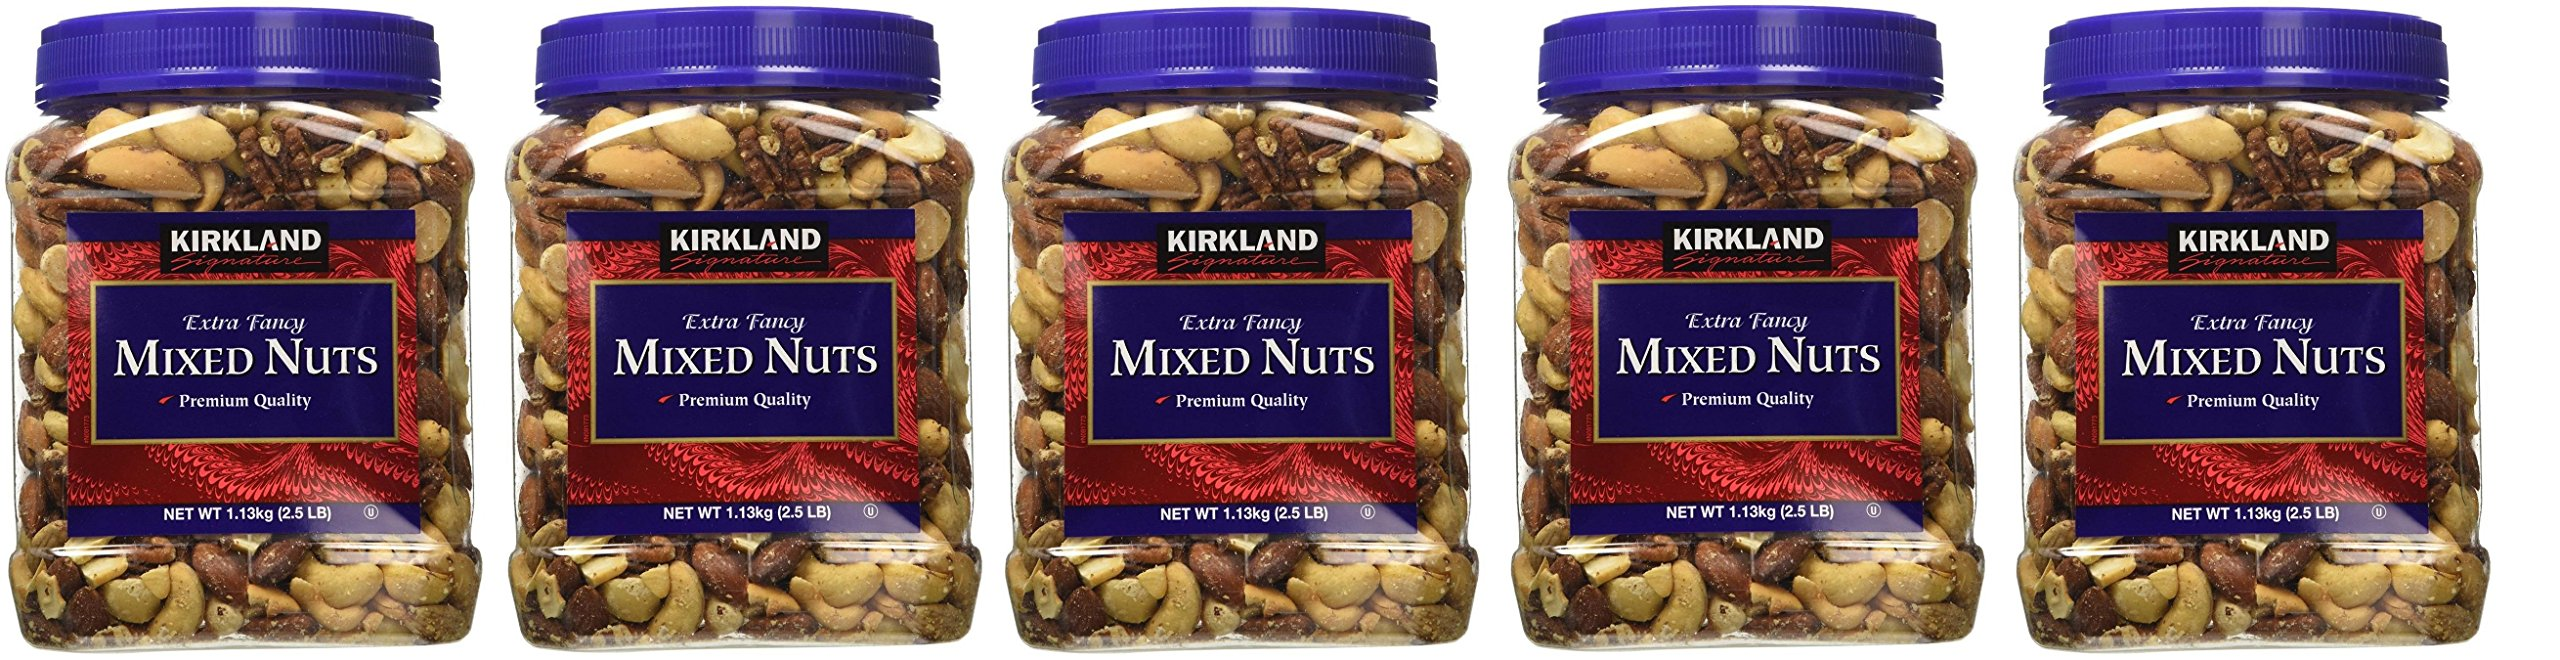 Kirkland Signature RzovGe Fancy Mixed Nuts, 40 Ounce (5 Pack)